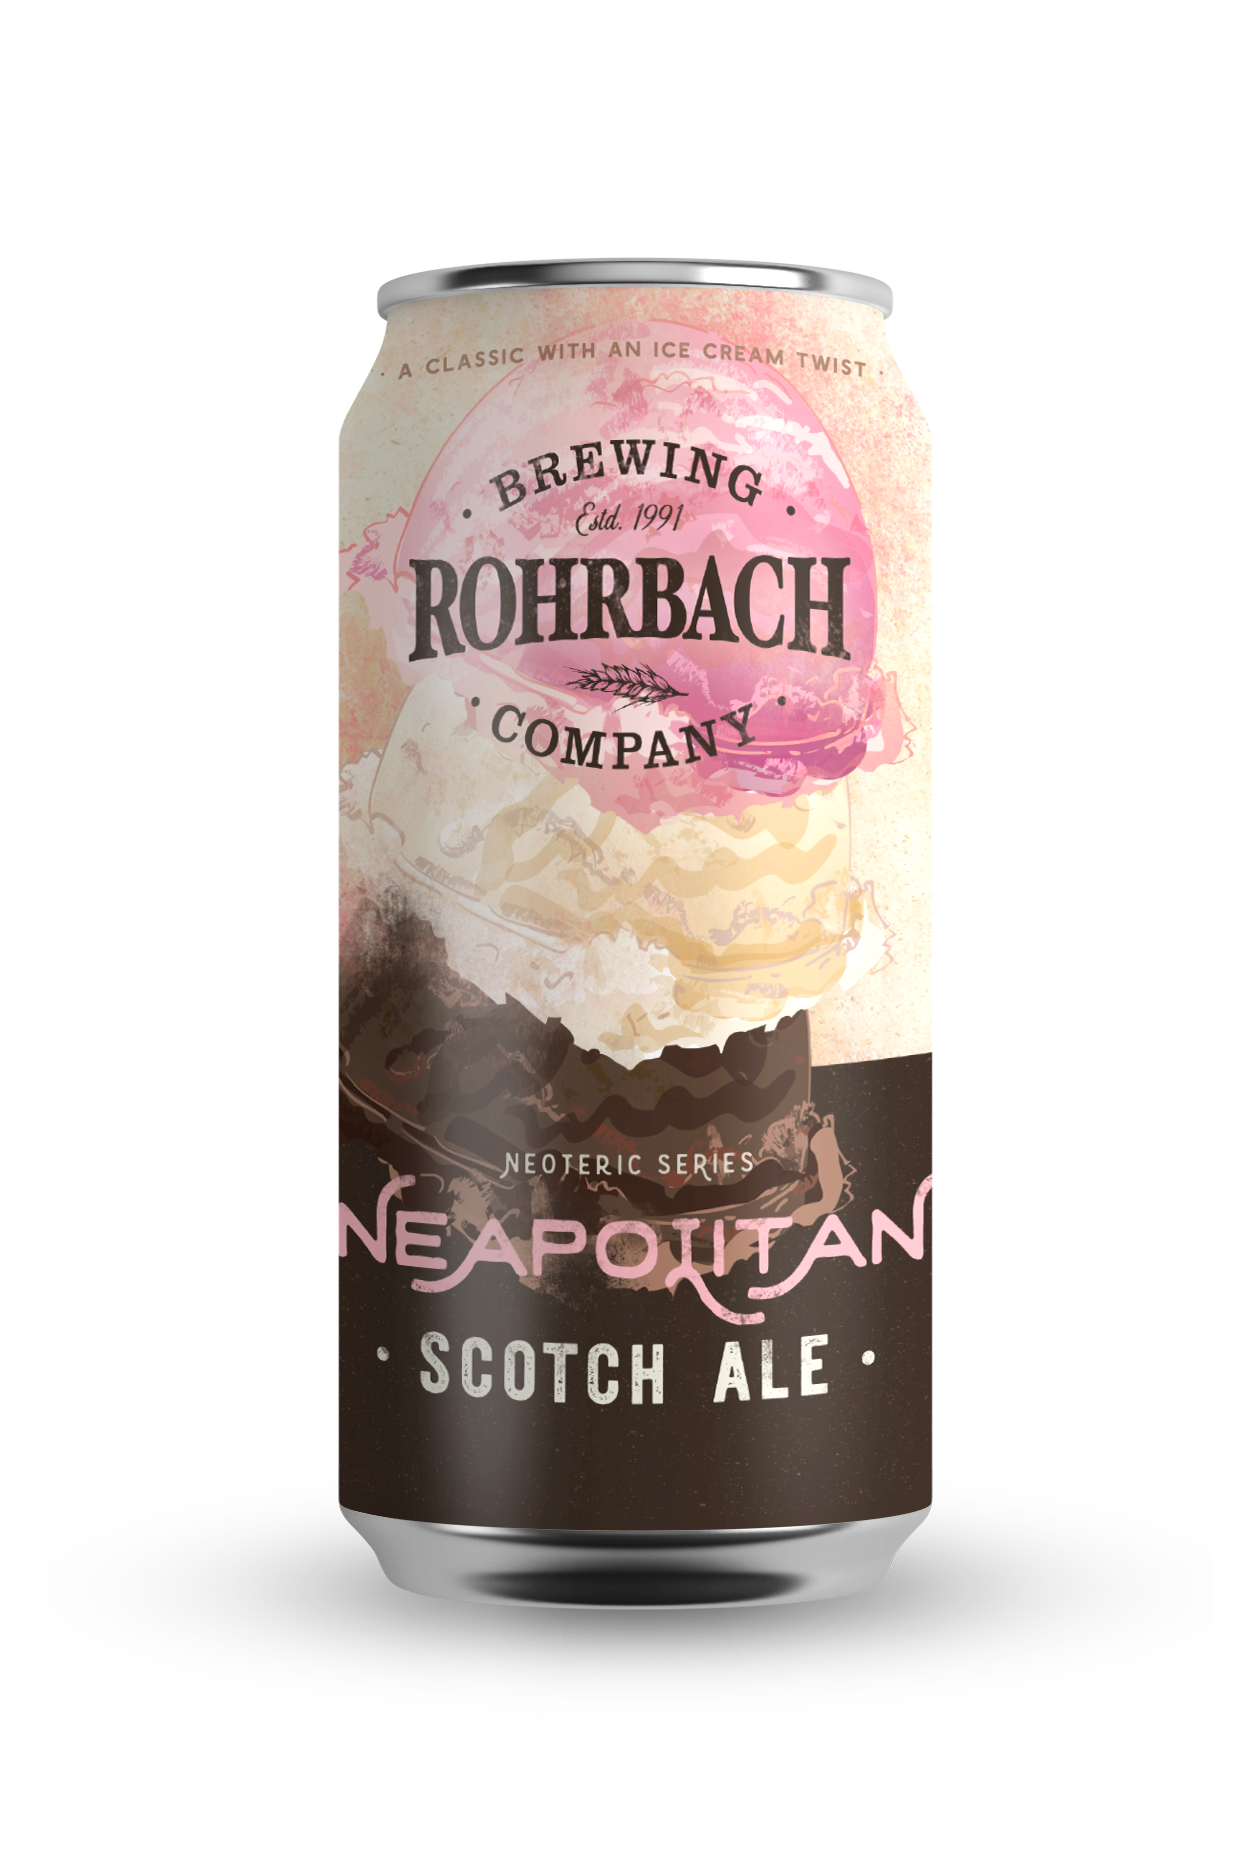 Neapolitan Scotch Ale